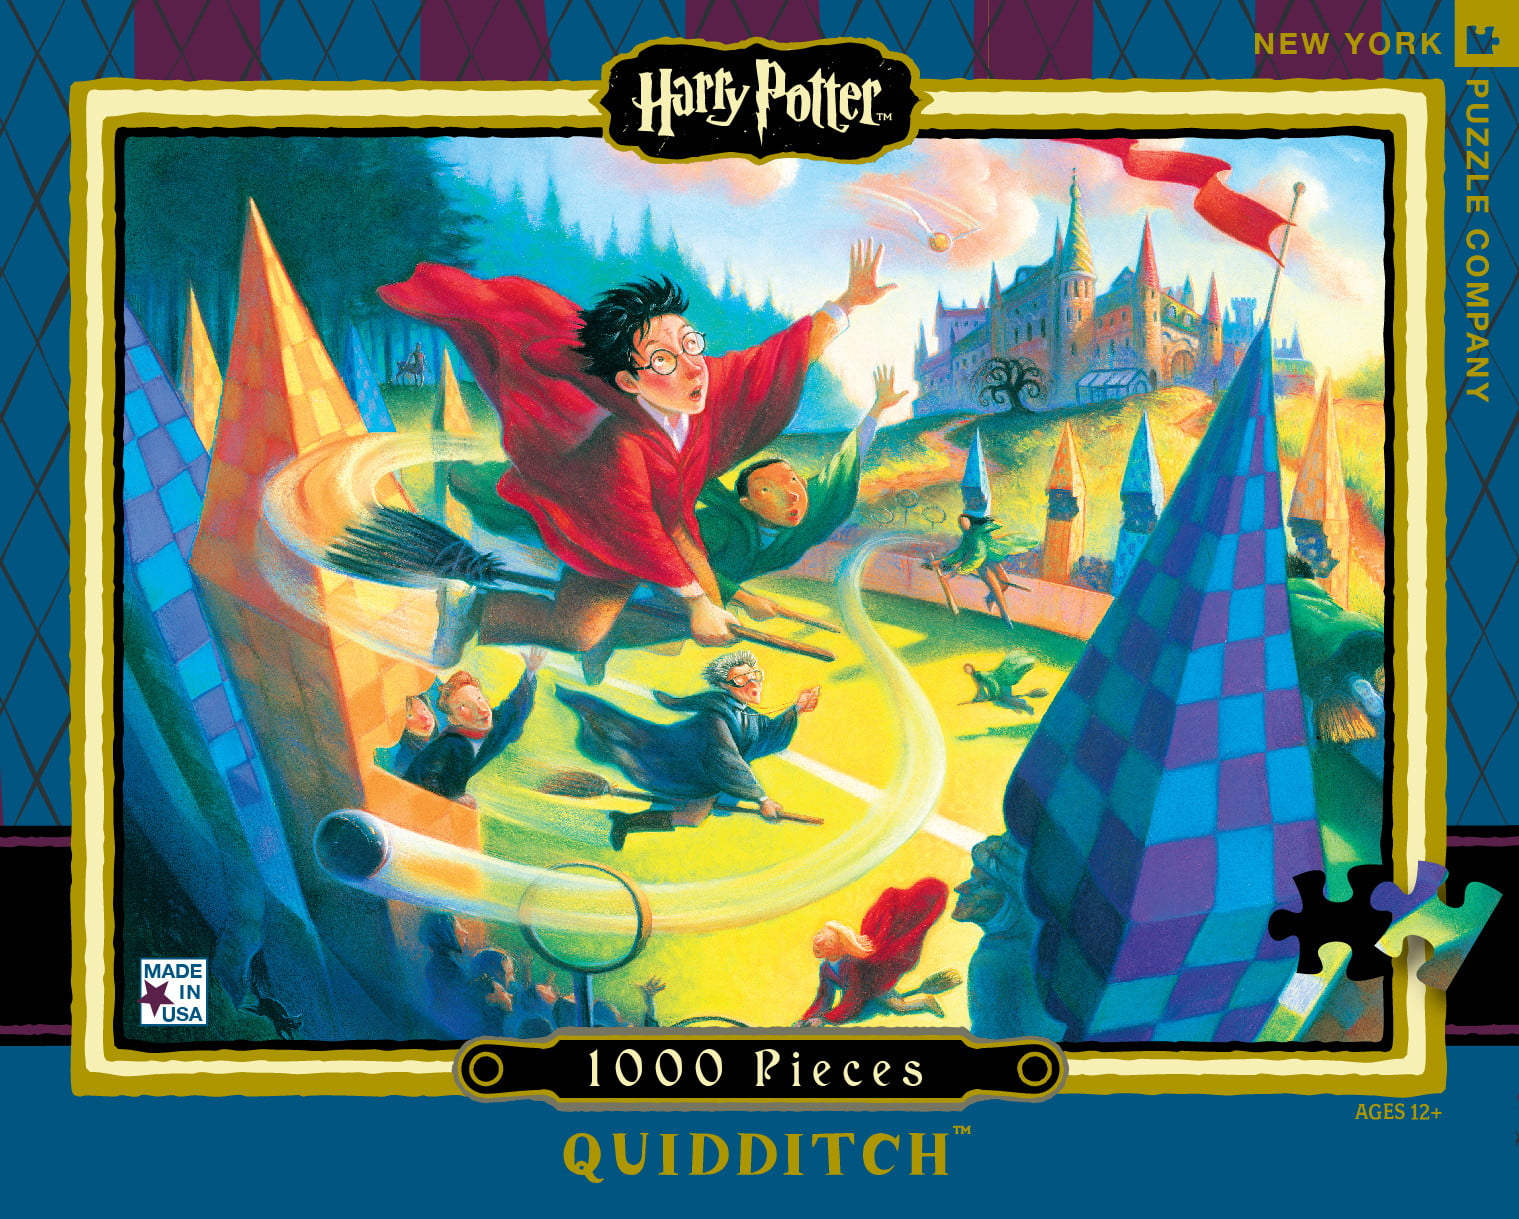 New York And Company Credit Card Payment >> HARRY POTTER QUIDDITCH 1000 PC JIGSAW PUZZLE - PUZZLE PALACE AUSTRALIA